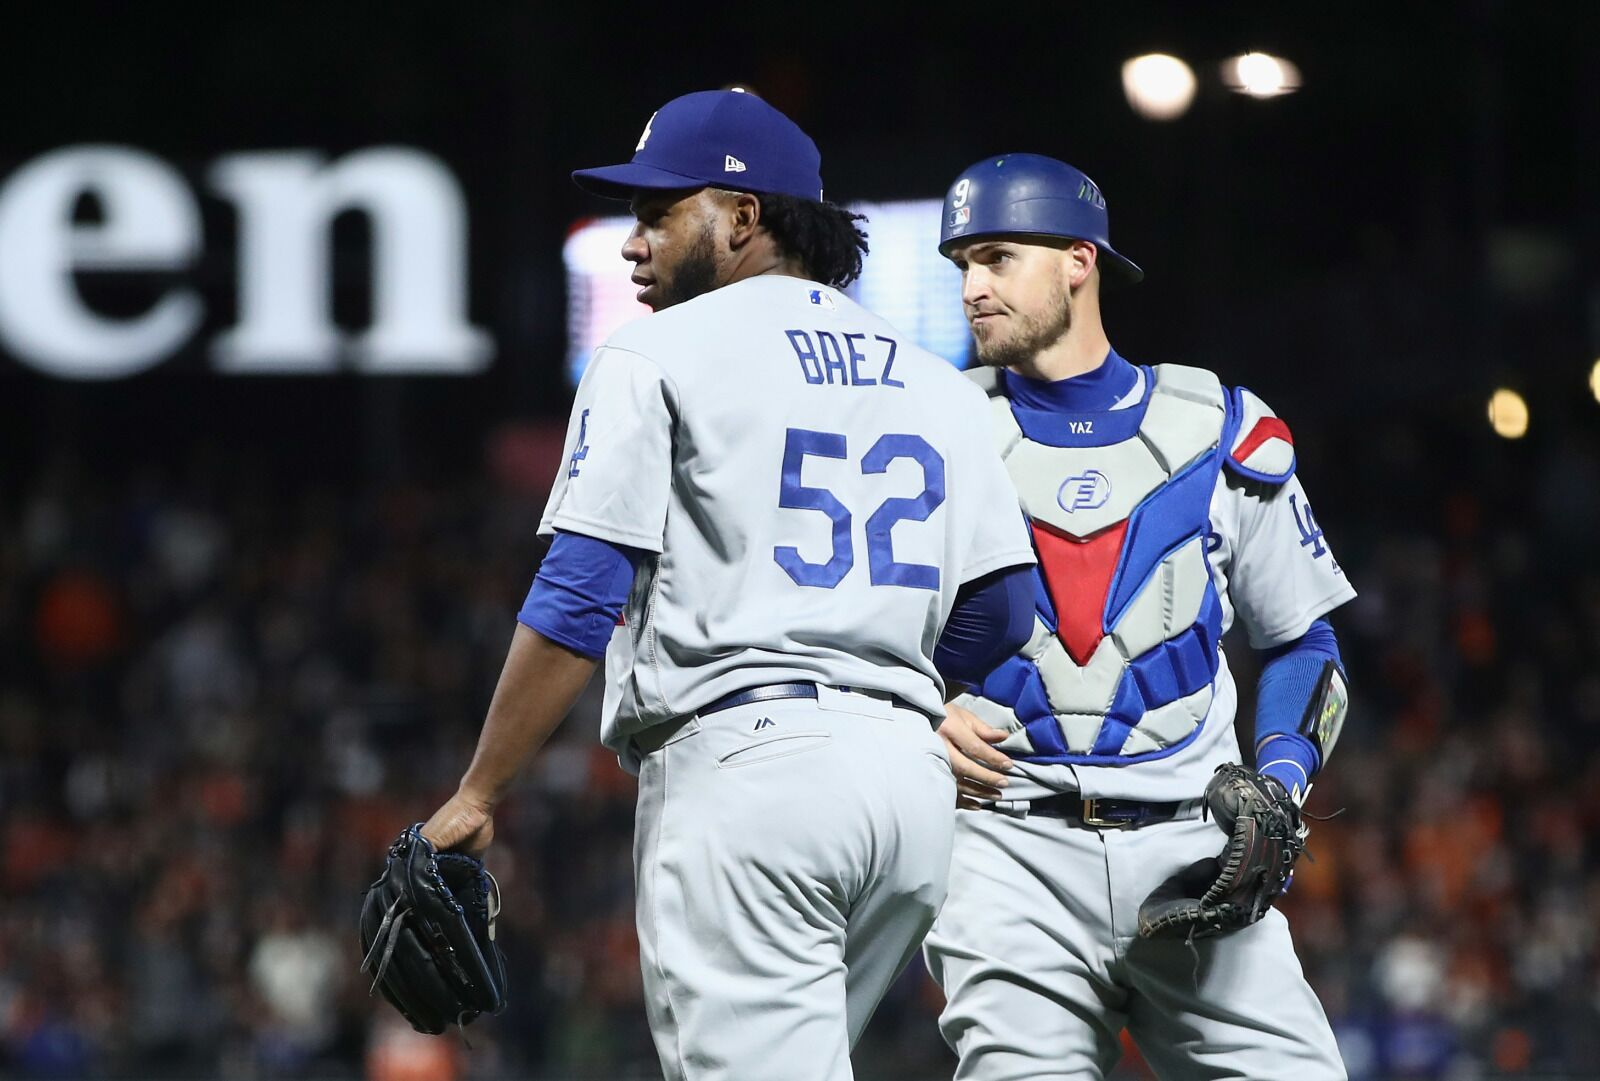 buy online d0410 9f824 Dodgers: The Baez Boo That Was Heard Around the World